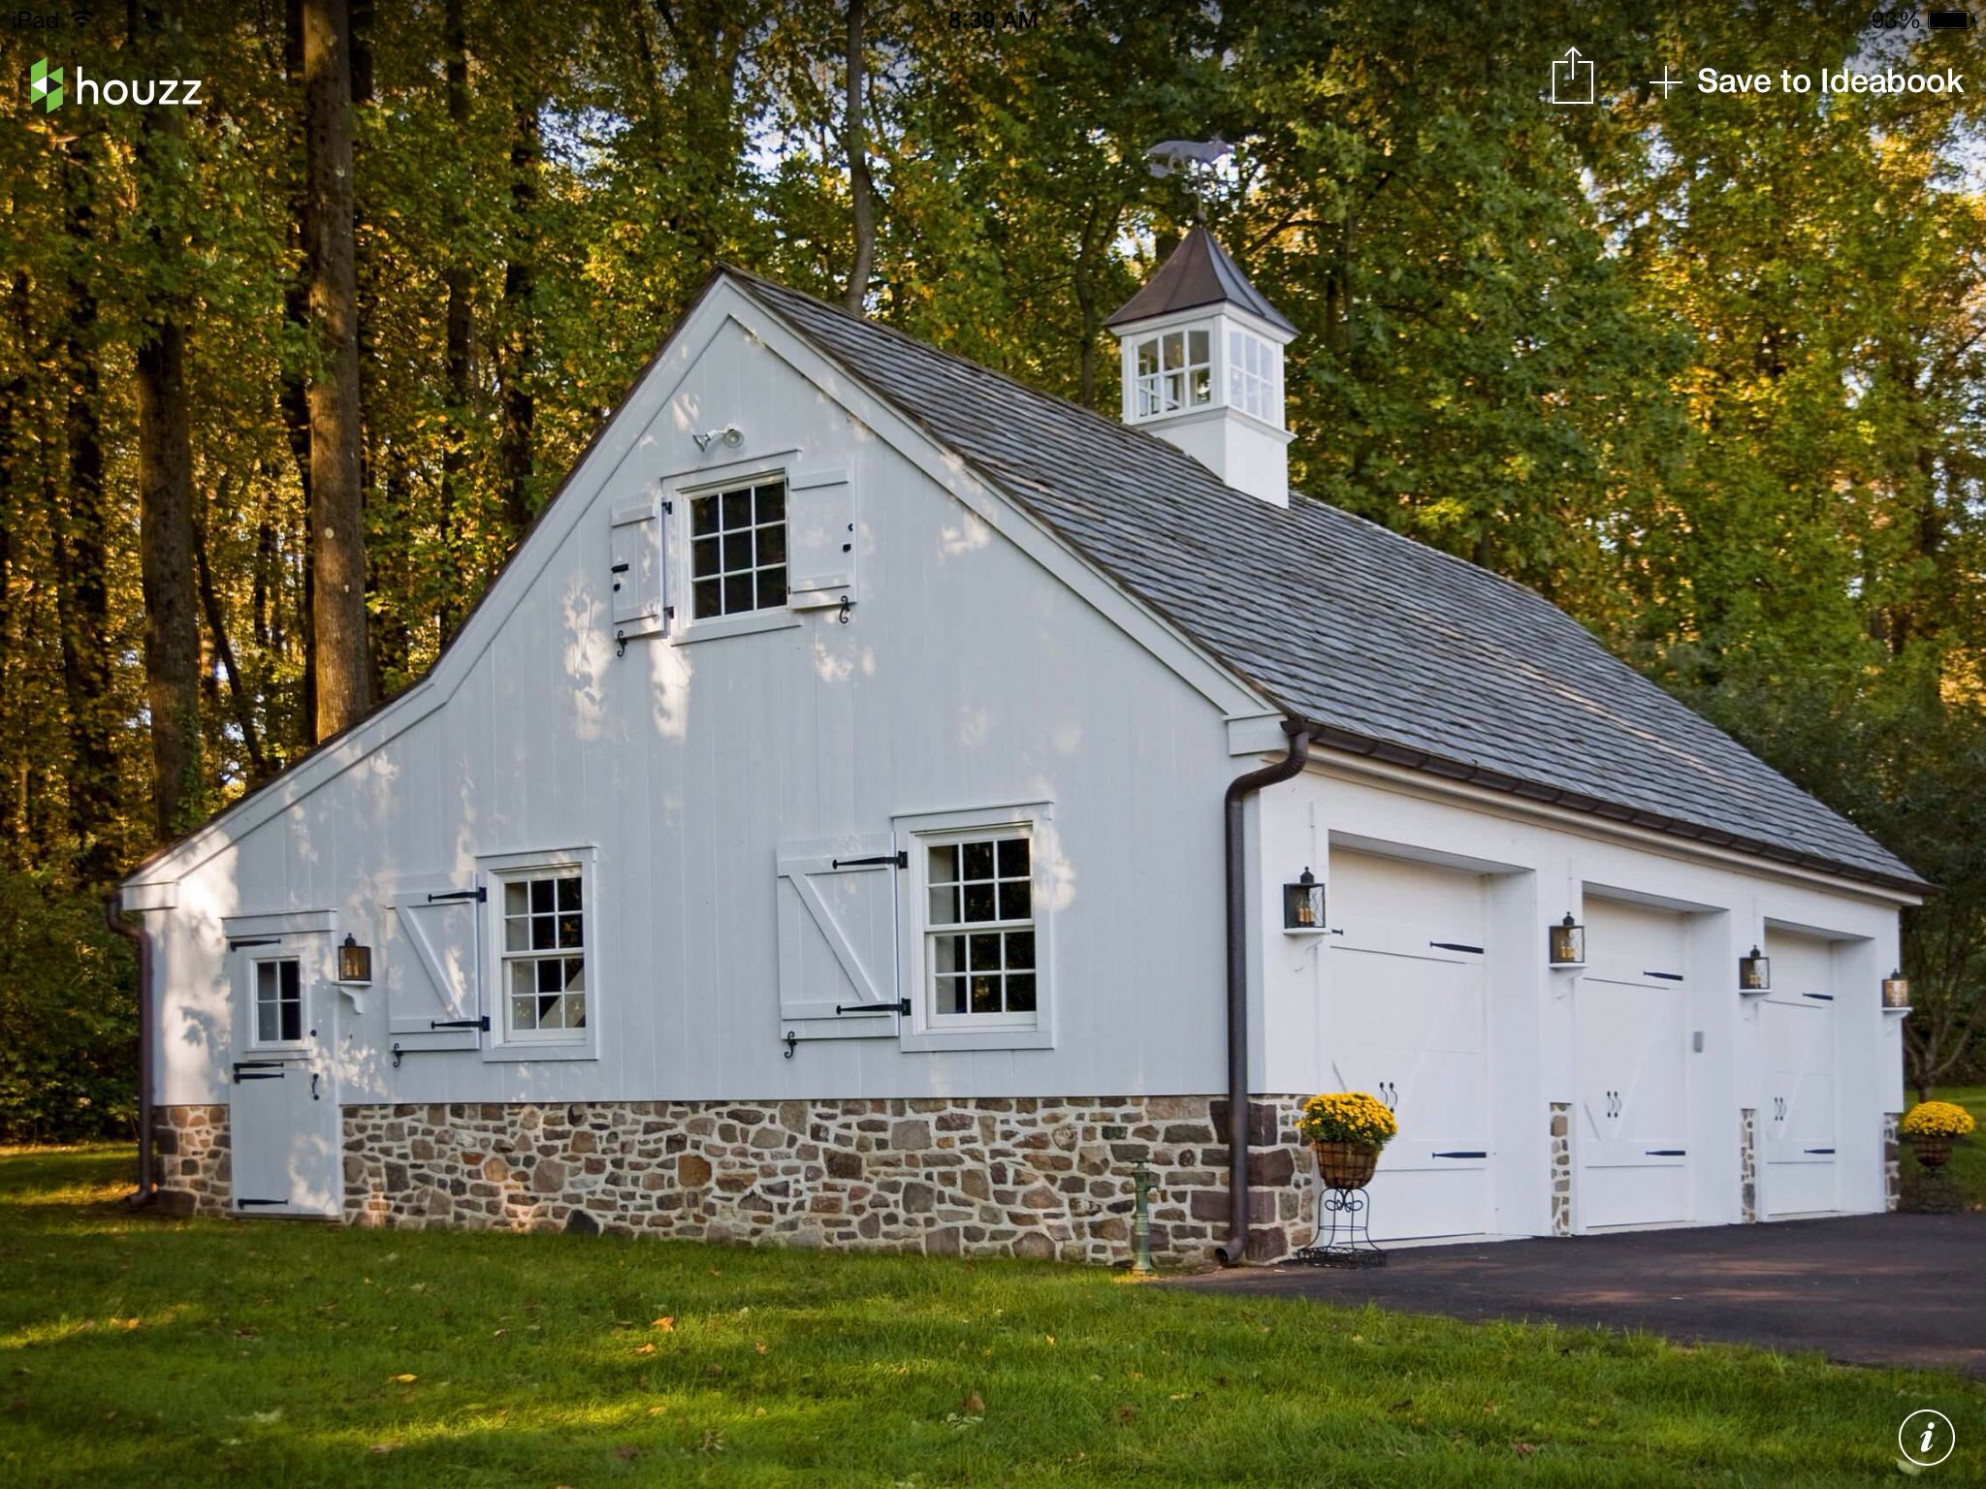 Barn Style Garages Bing Images | Urban Home In 8 | Barn ..